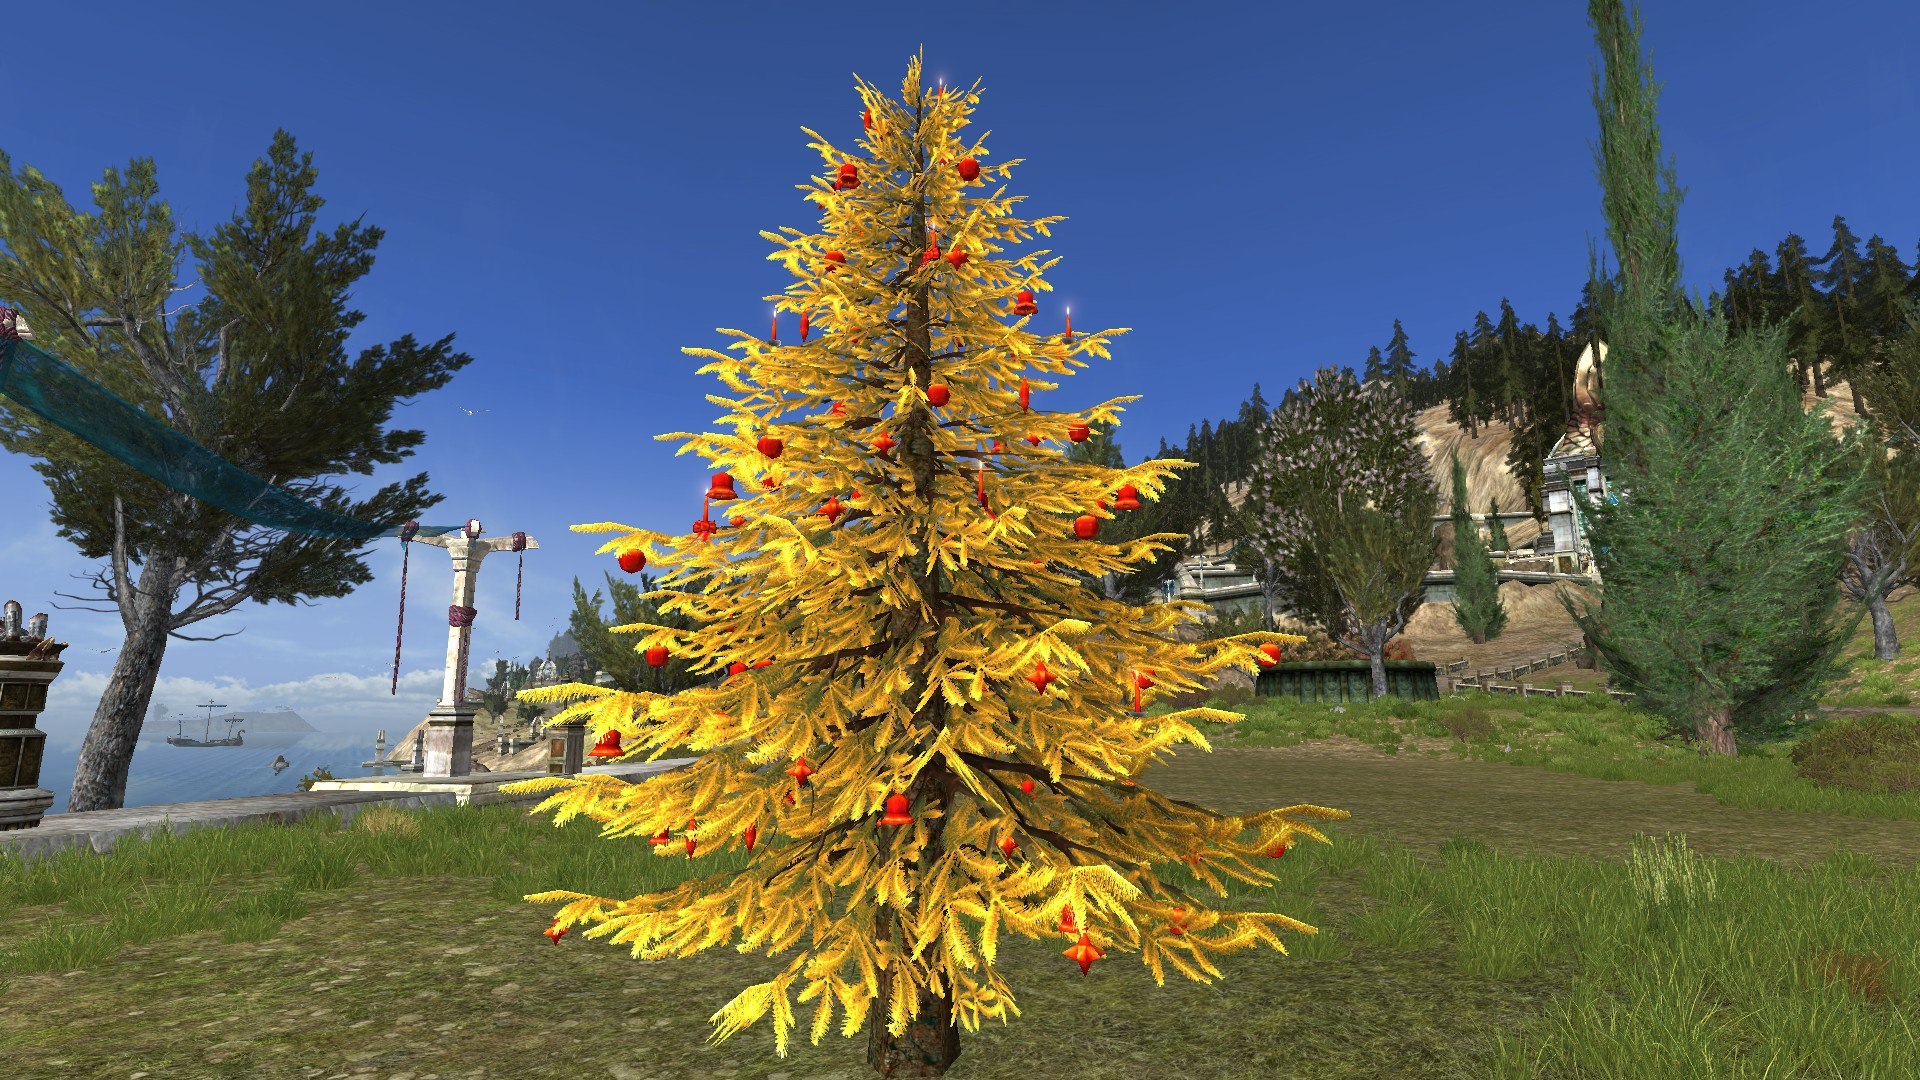 Golden Decorated Outdoor Yule-Tree